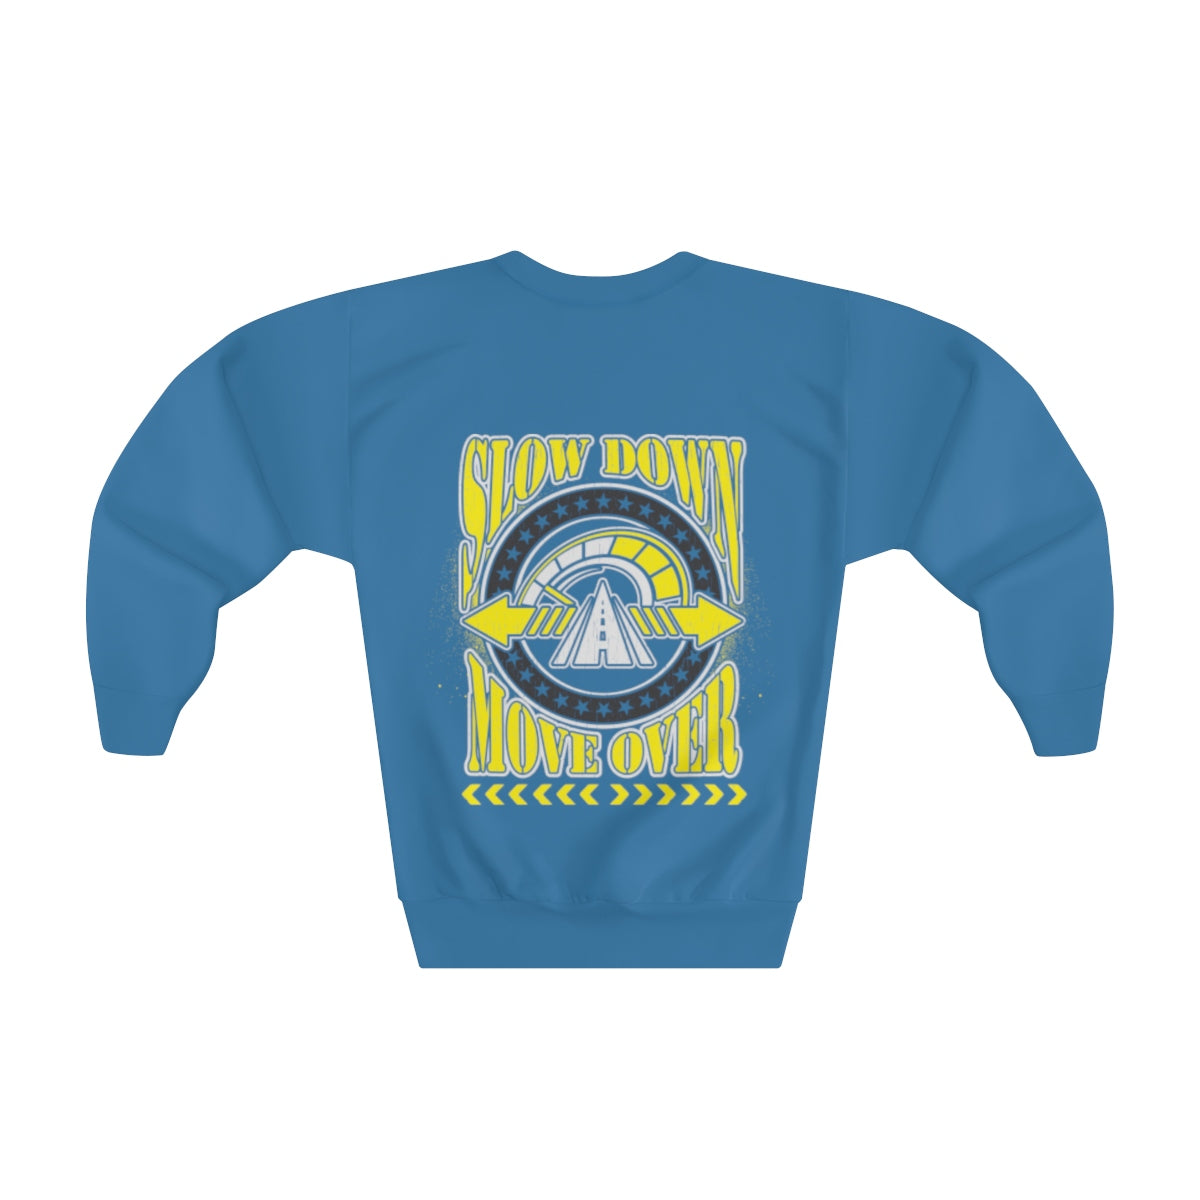 Youth Crewneck Sweatshirt - SDMO Shield & Big Yellow